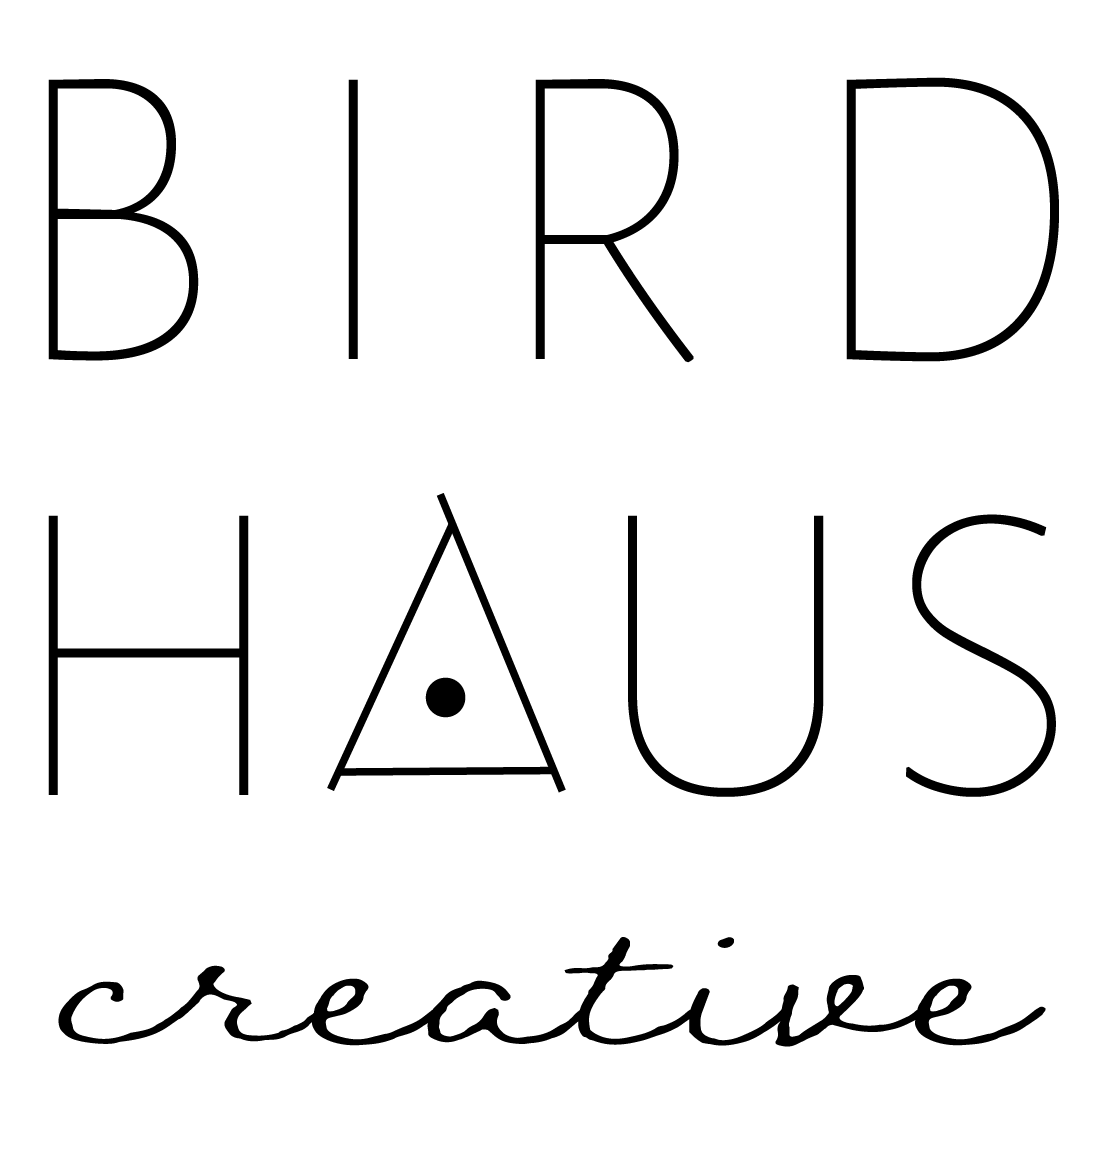 BIRD HAUS CREATIVE